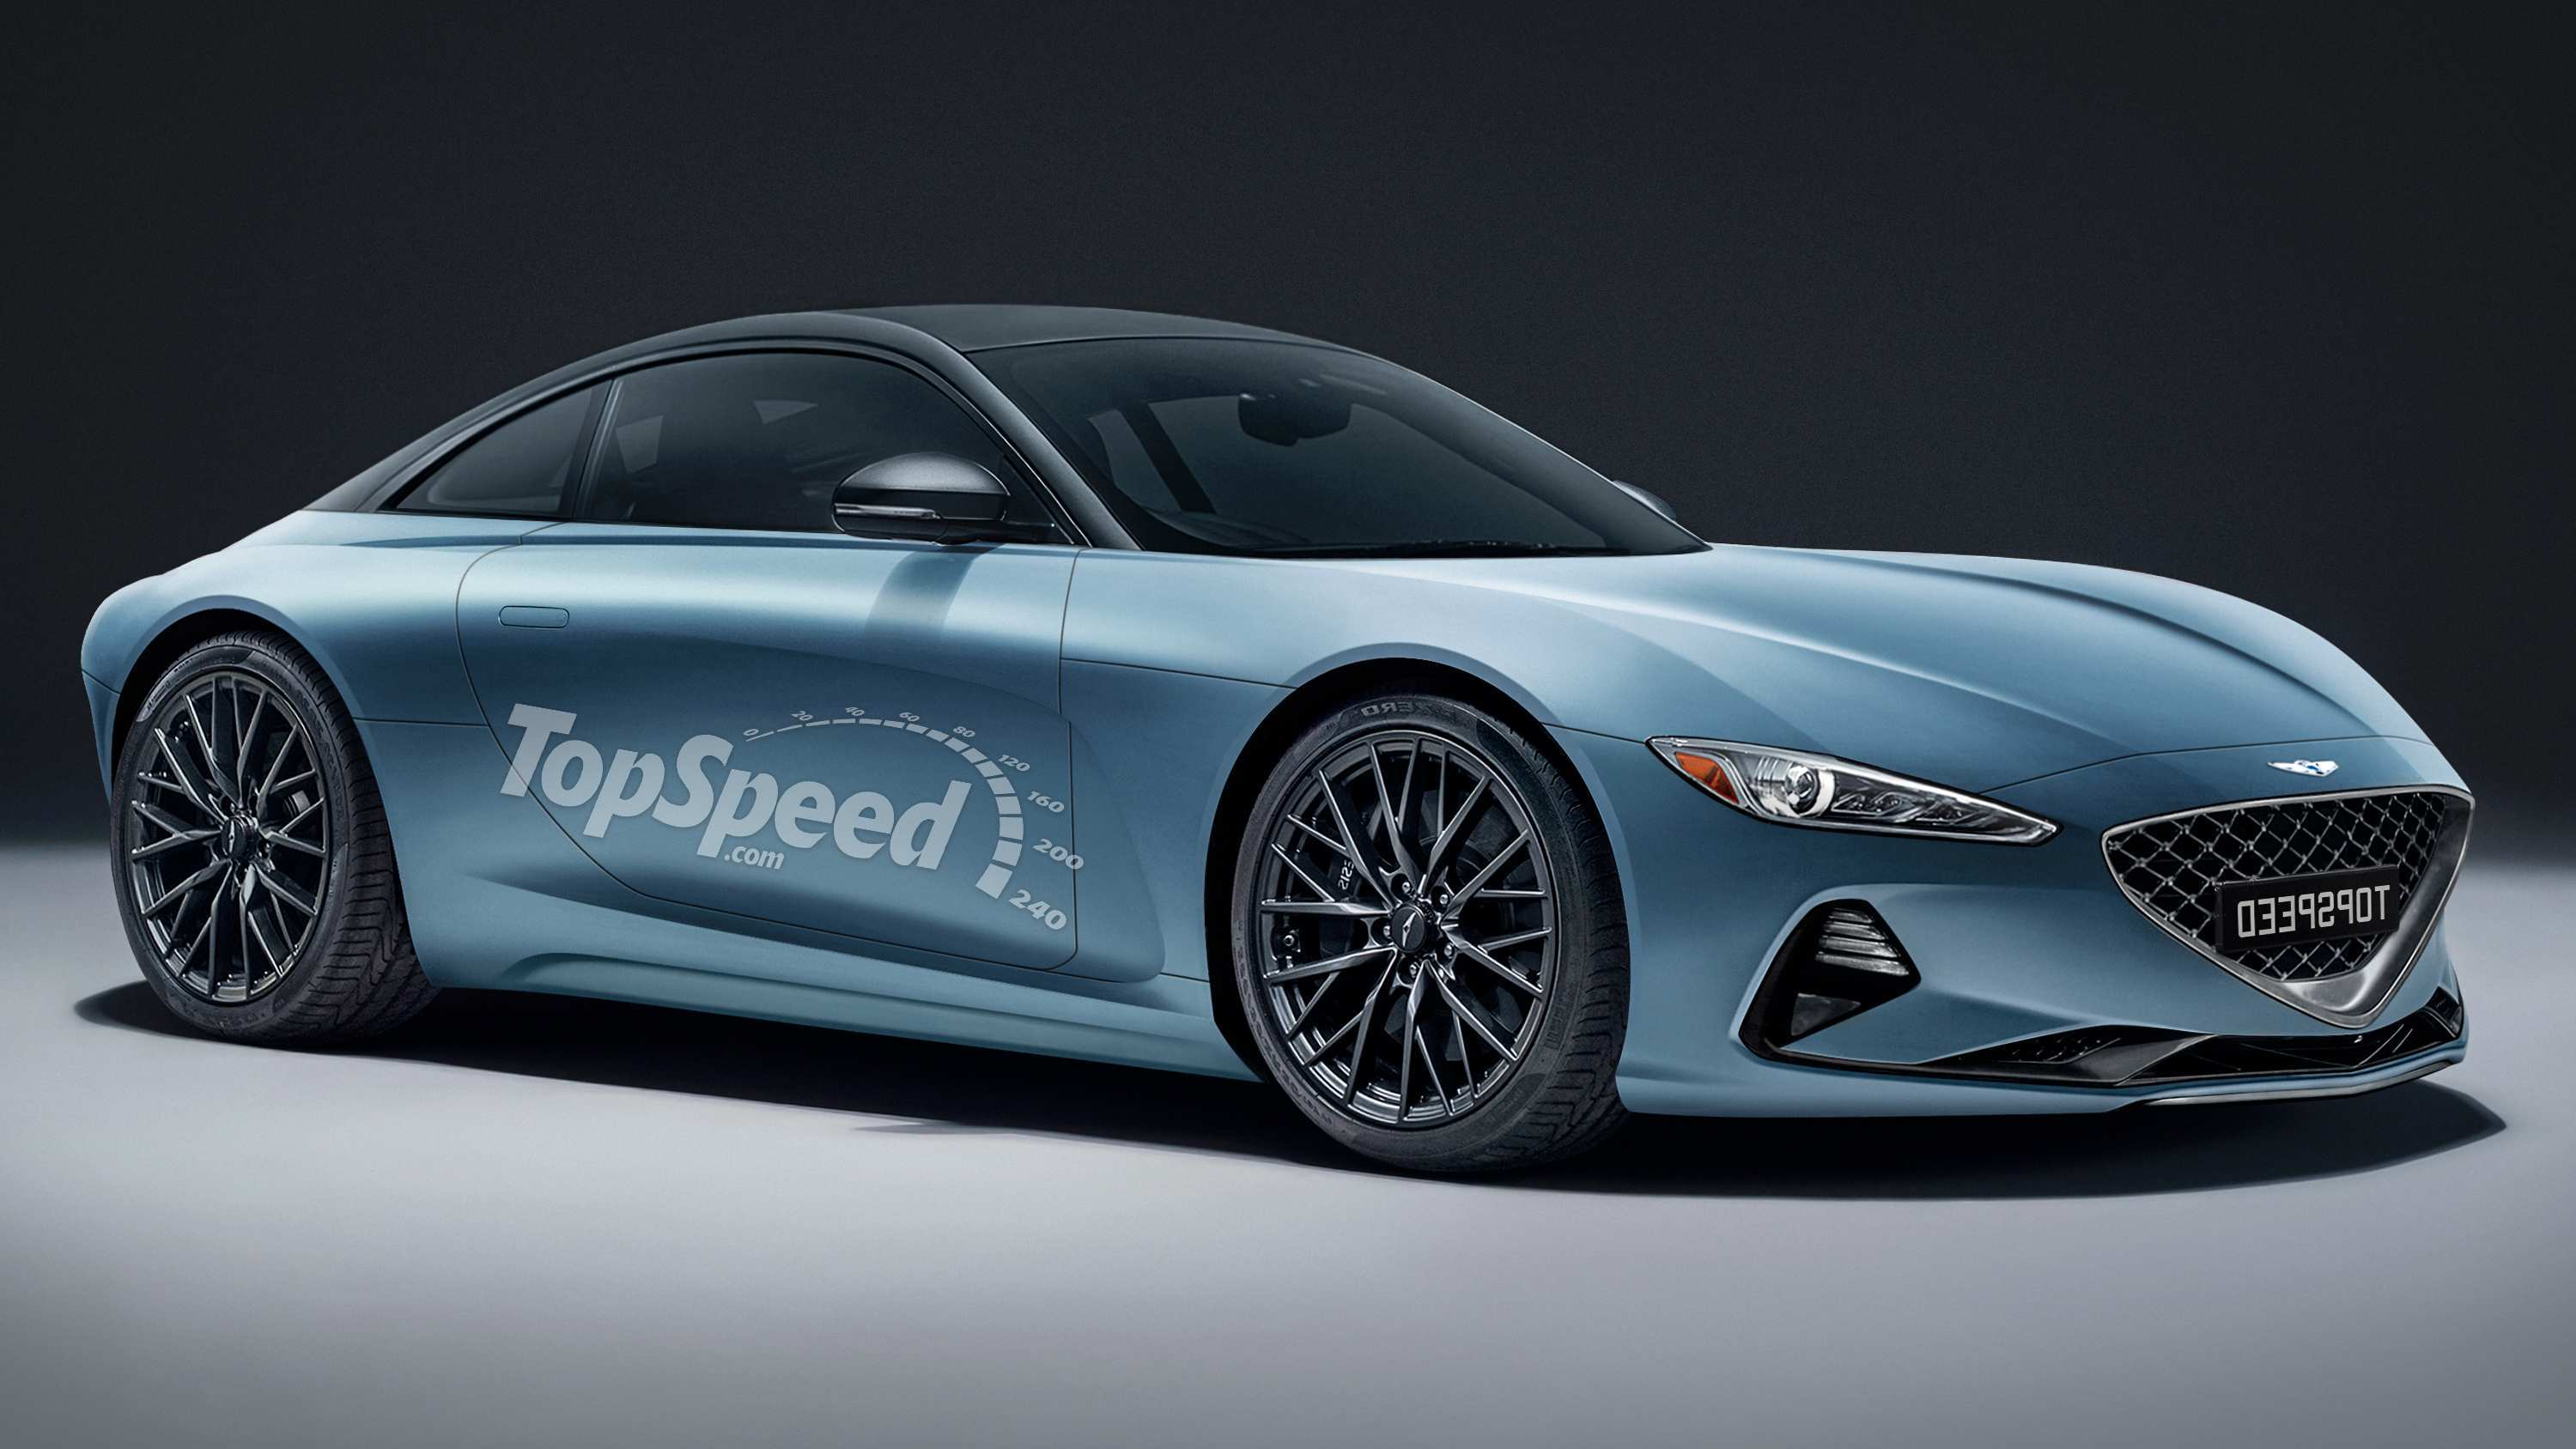 67 Best Review 2020 Hyundai Coupe Specs and Review by 2020 Hyundai Coupe